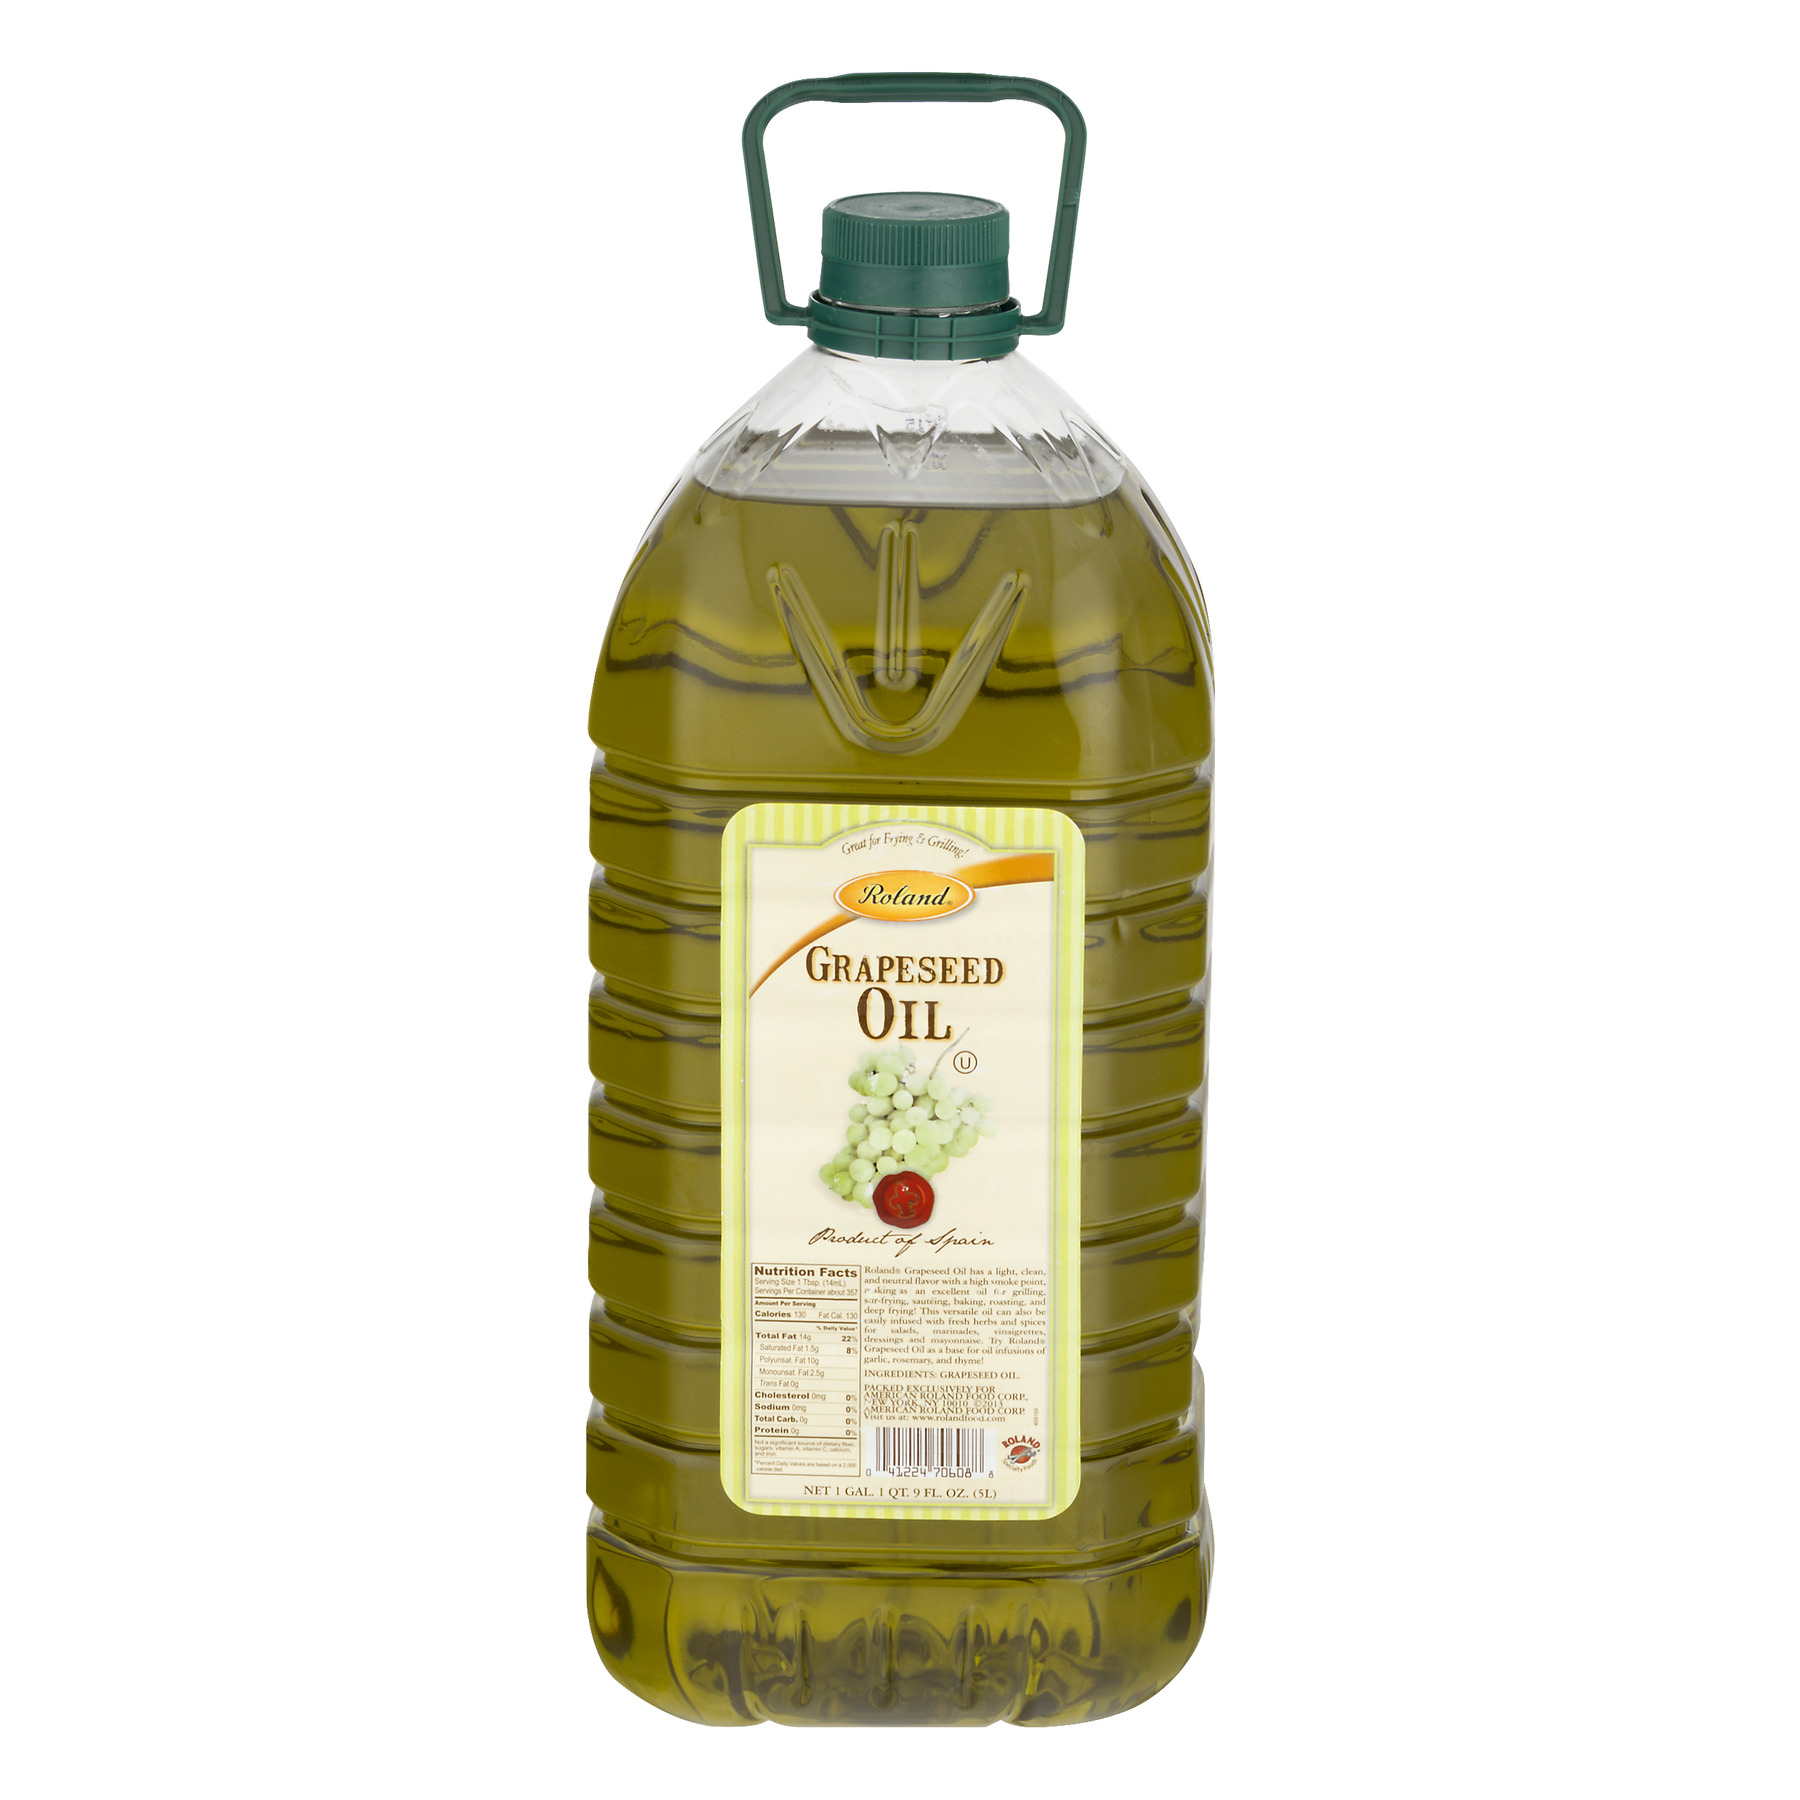 Roland Grapeseed Oil, 5.0 L